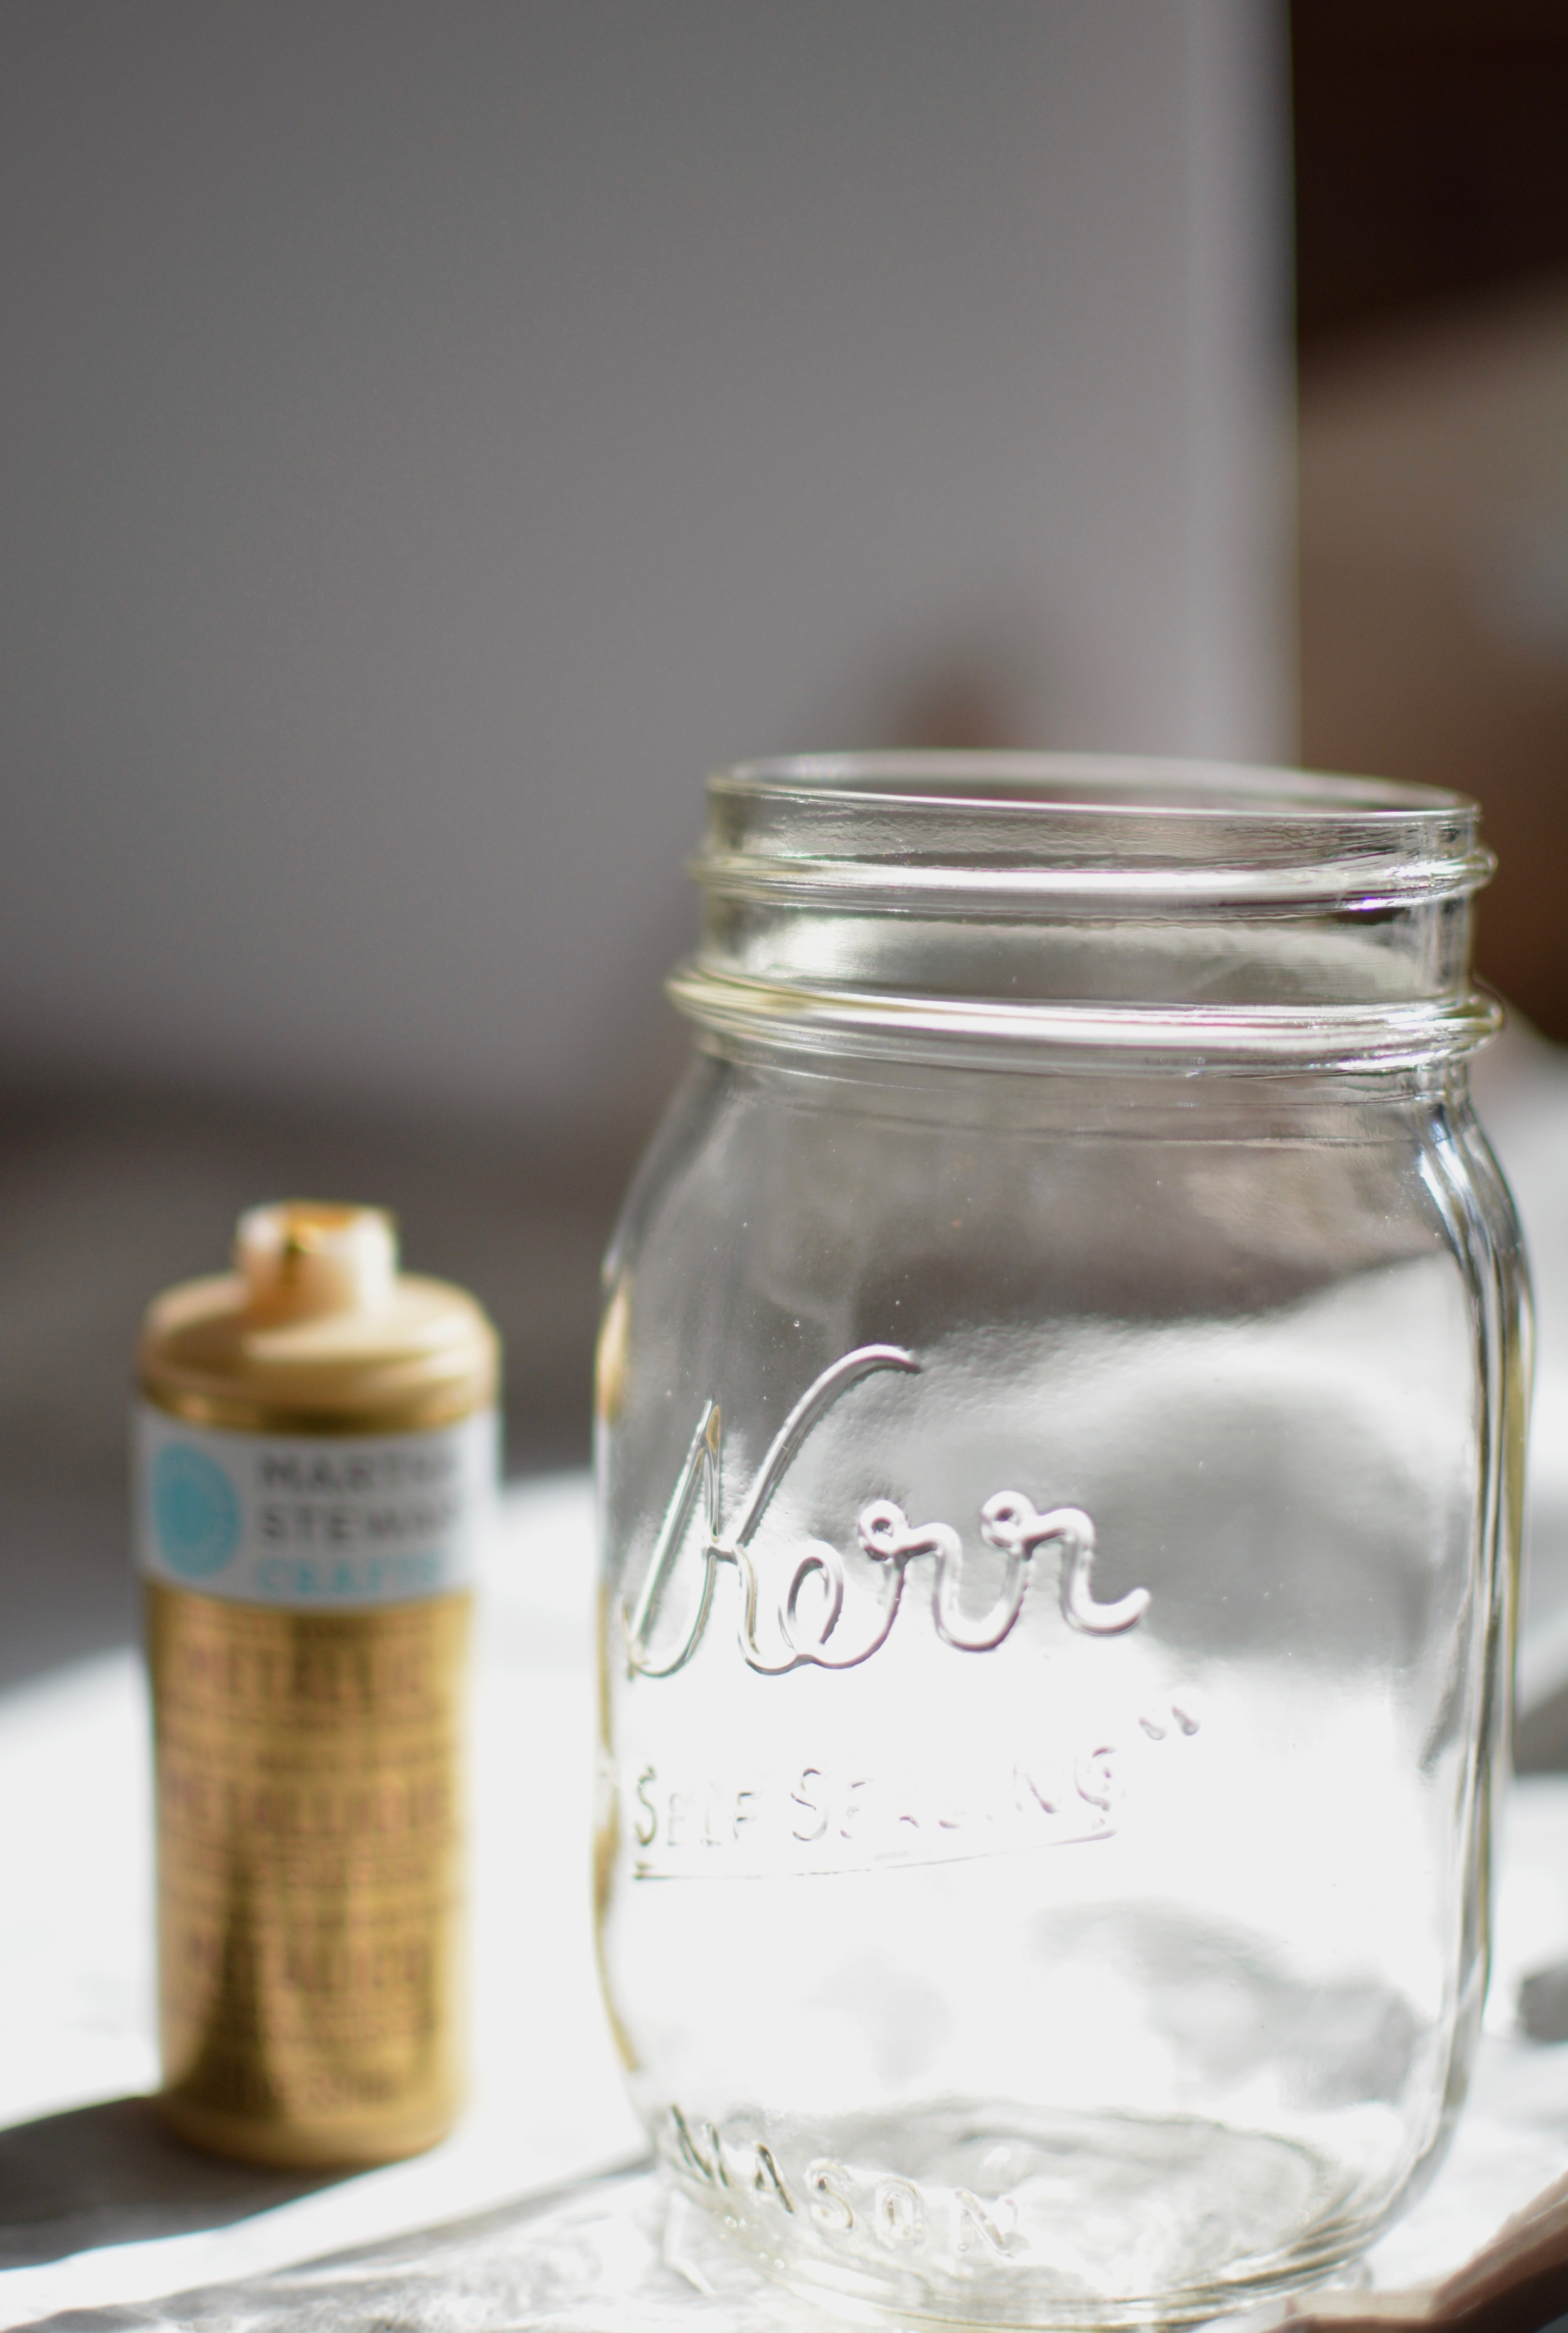 Mason jars were really popular a few years ago and for good reason- they are easy to find and affordable and offer all sorts of opportunities for personalization.